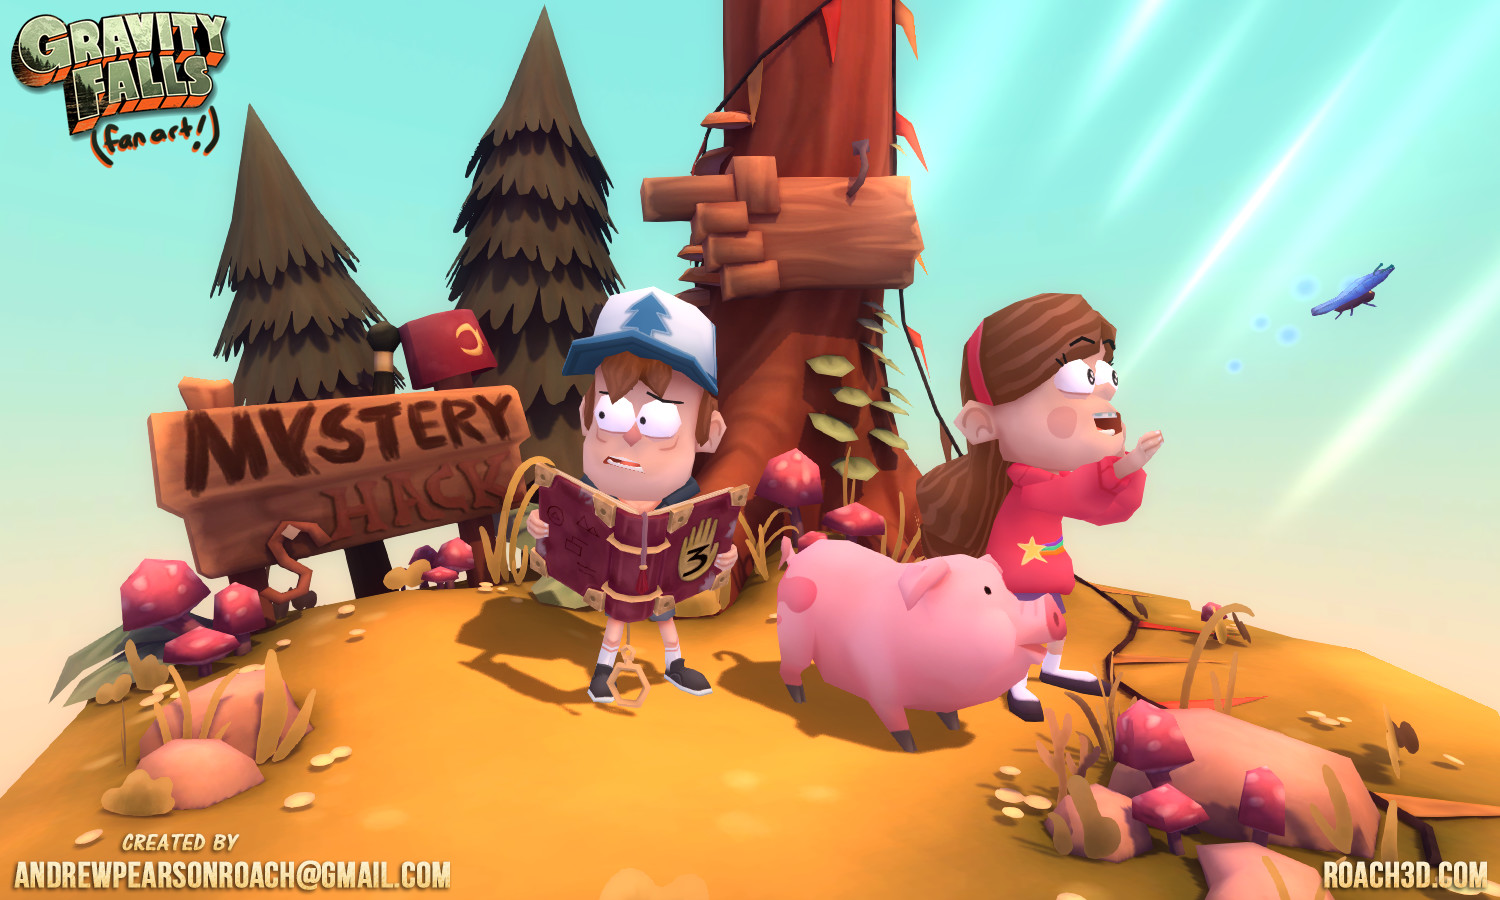 ArtStation - Gravity Falls - Fan Art, Andrew Pearson-Roach